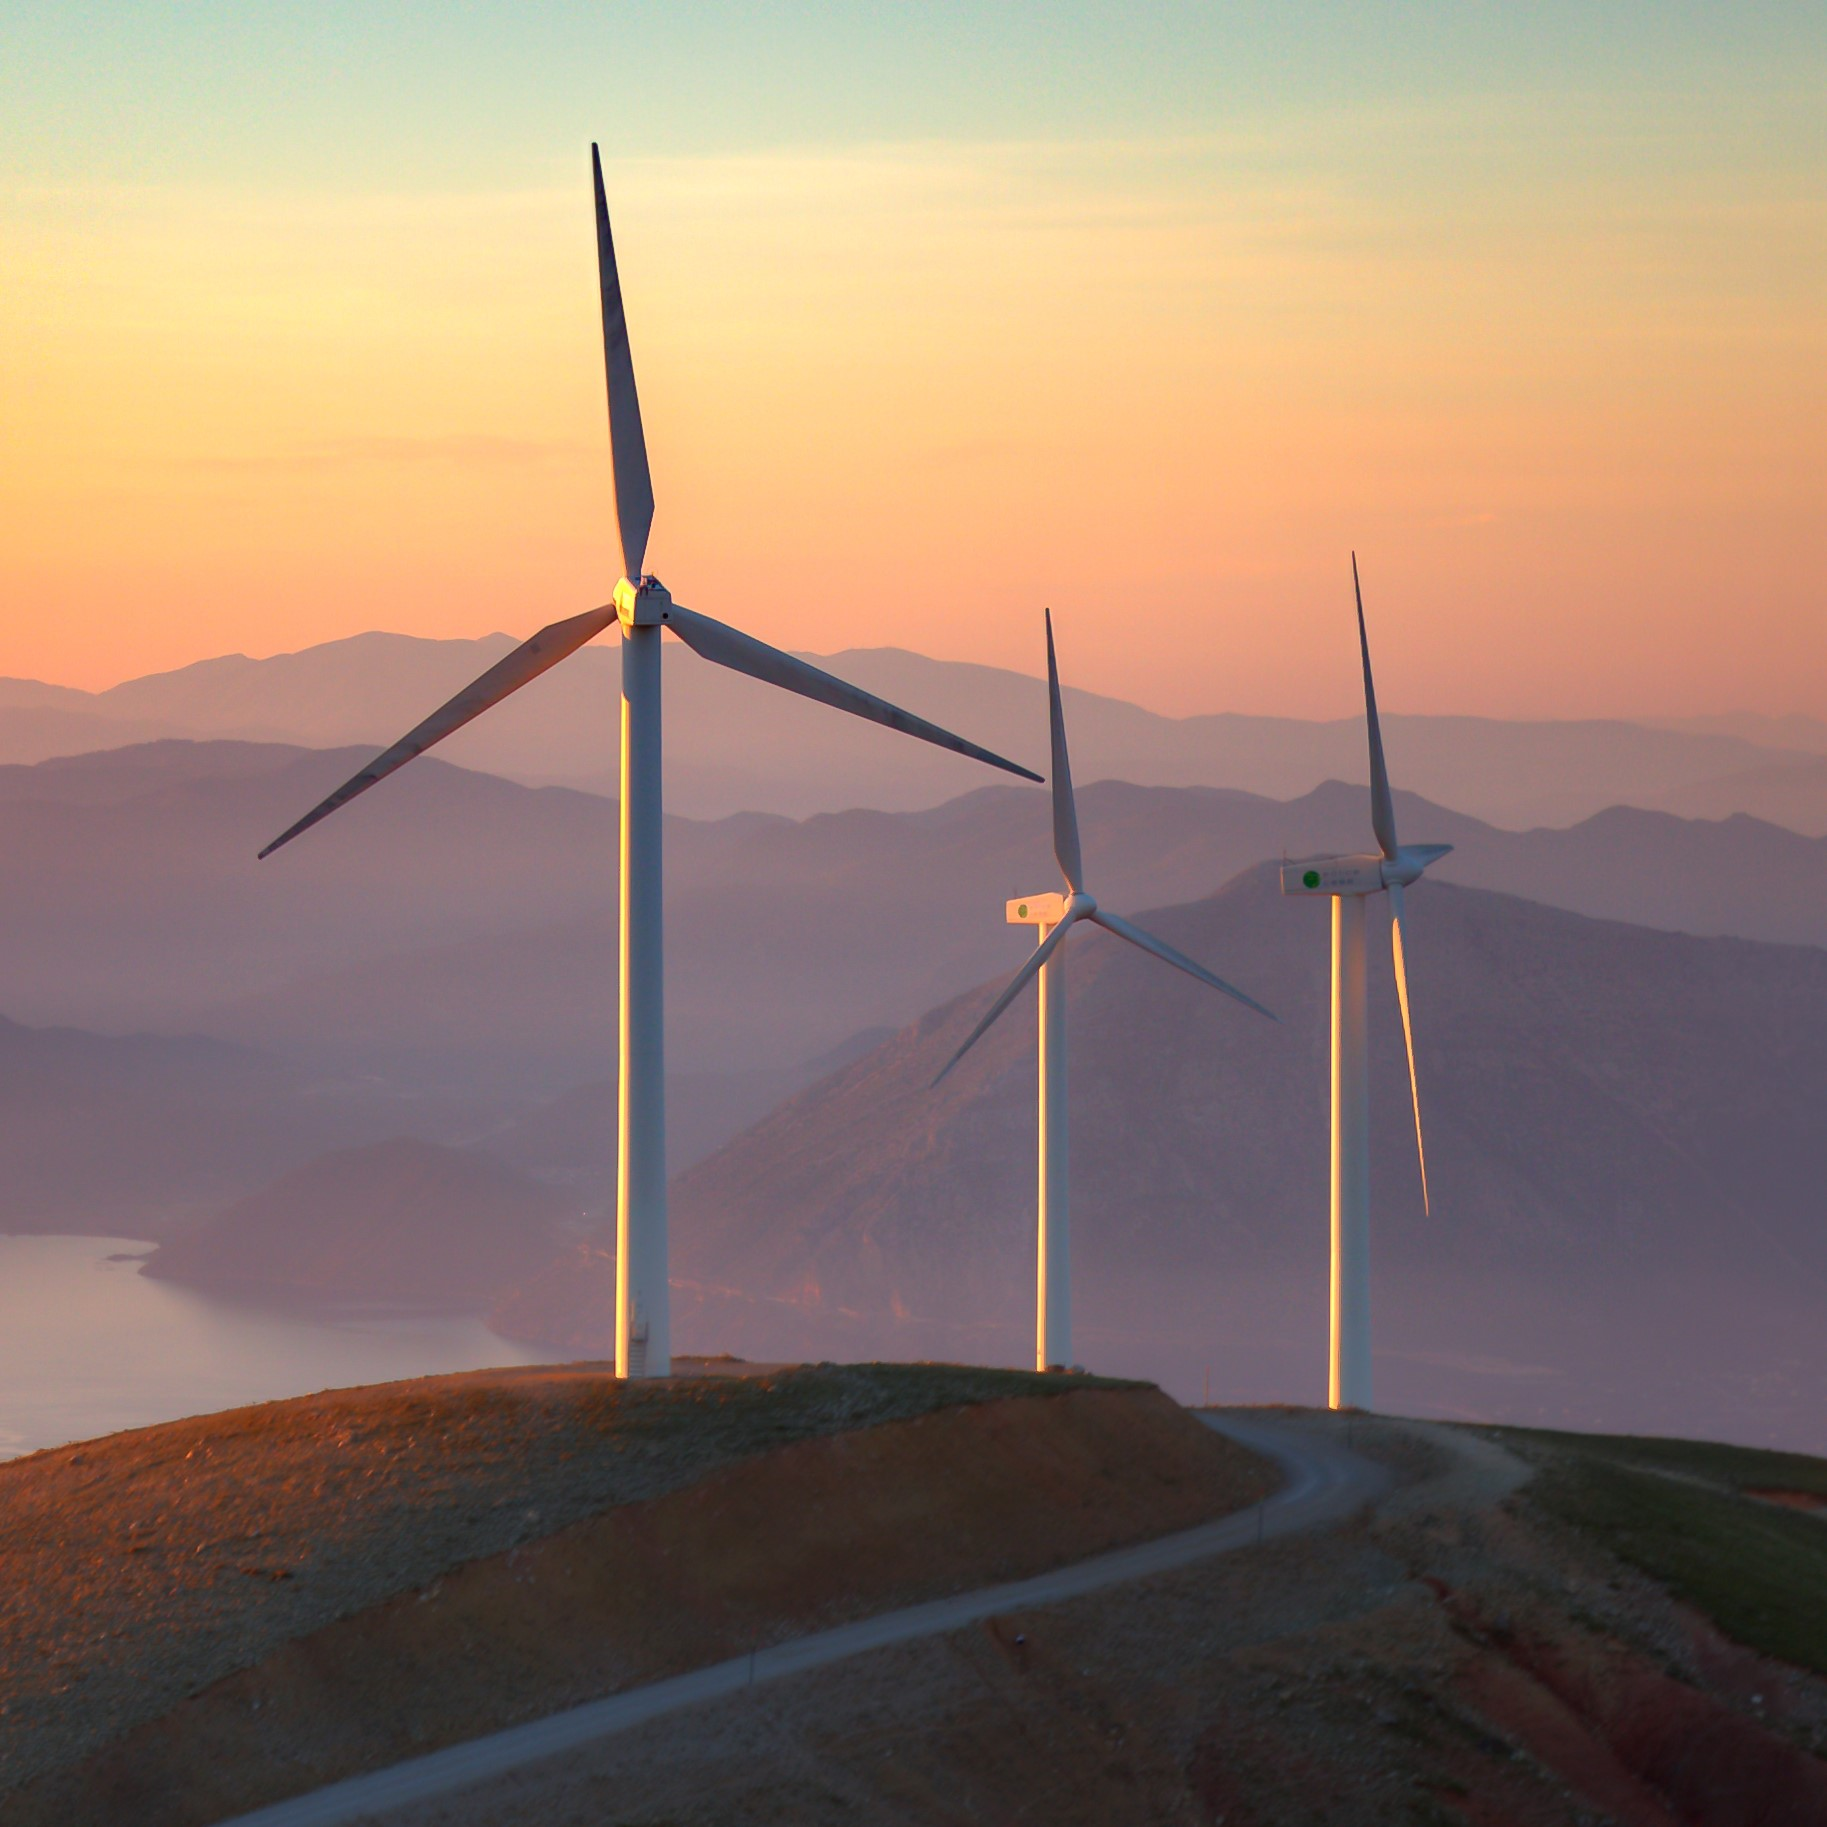 Image of Windmills from LowCarbonPledge.org